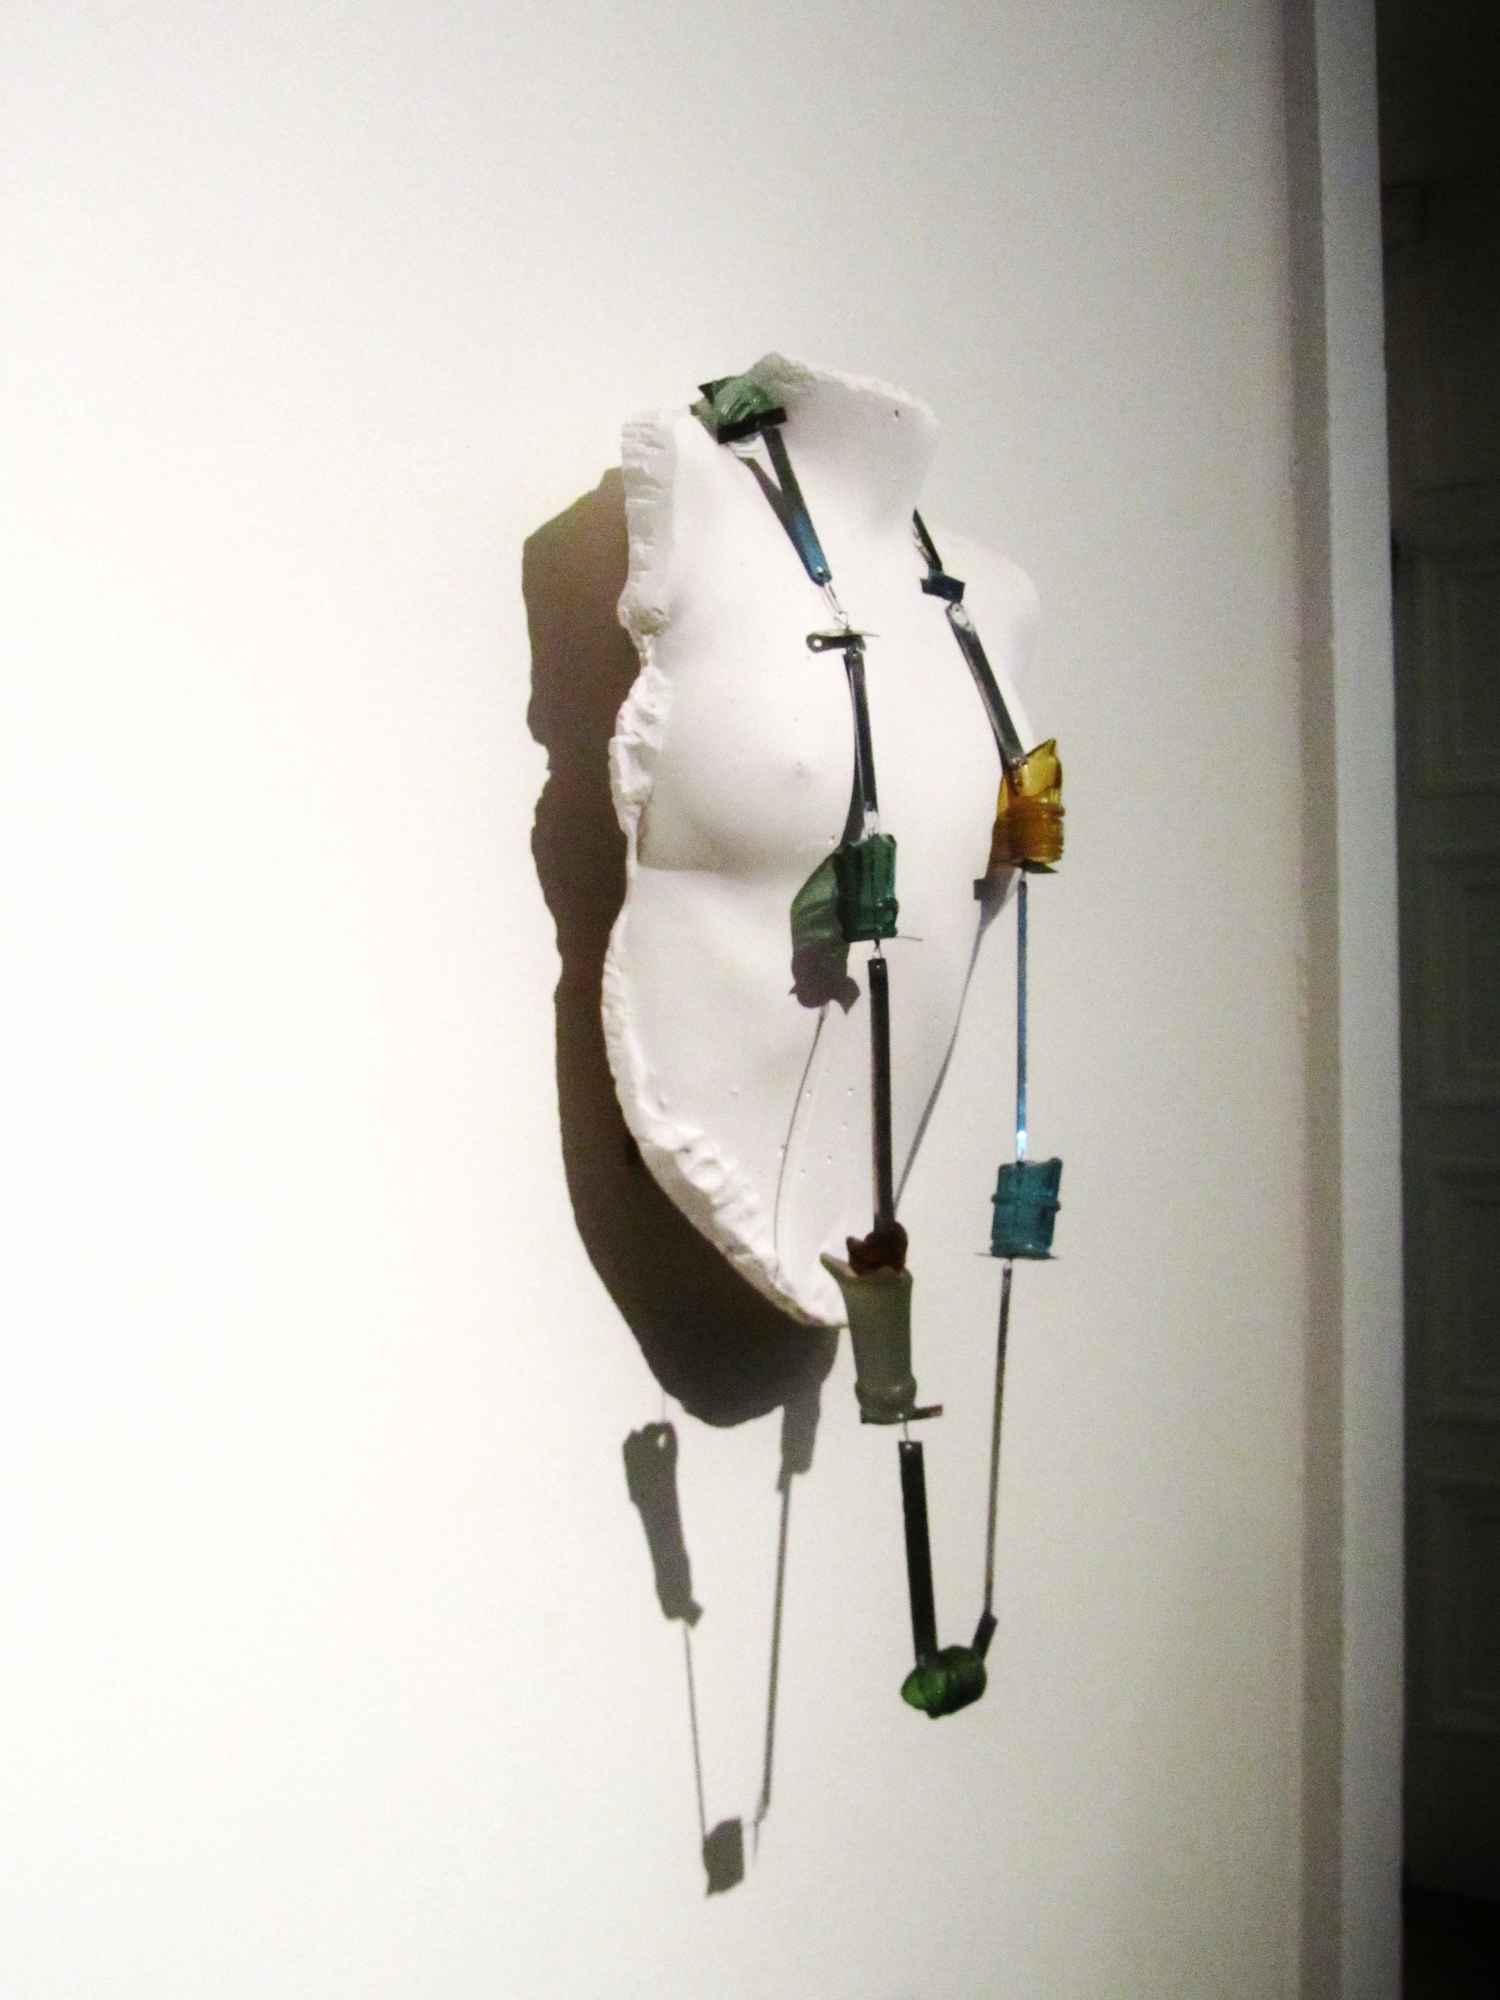 Bottle-Neck, Saw, Chain 2014 Glass, Saw blades, Stainless Steel. Broken bottles featured in a similar Schobinger piece I was struck by when I first started studying jewellery.